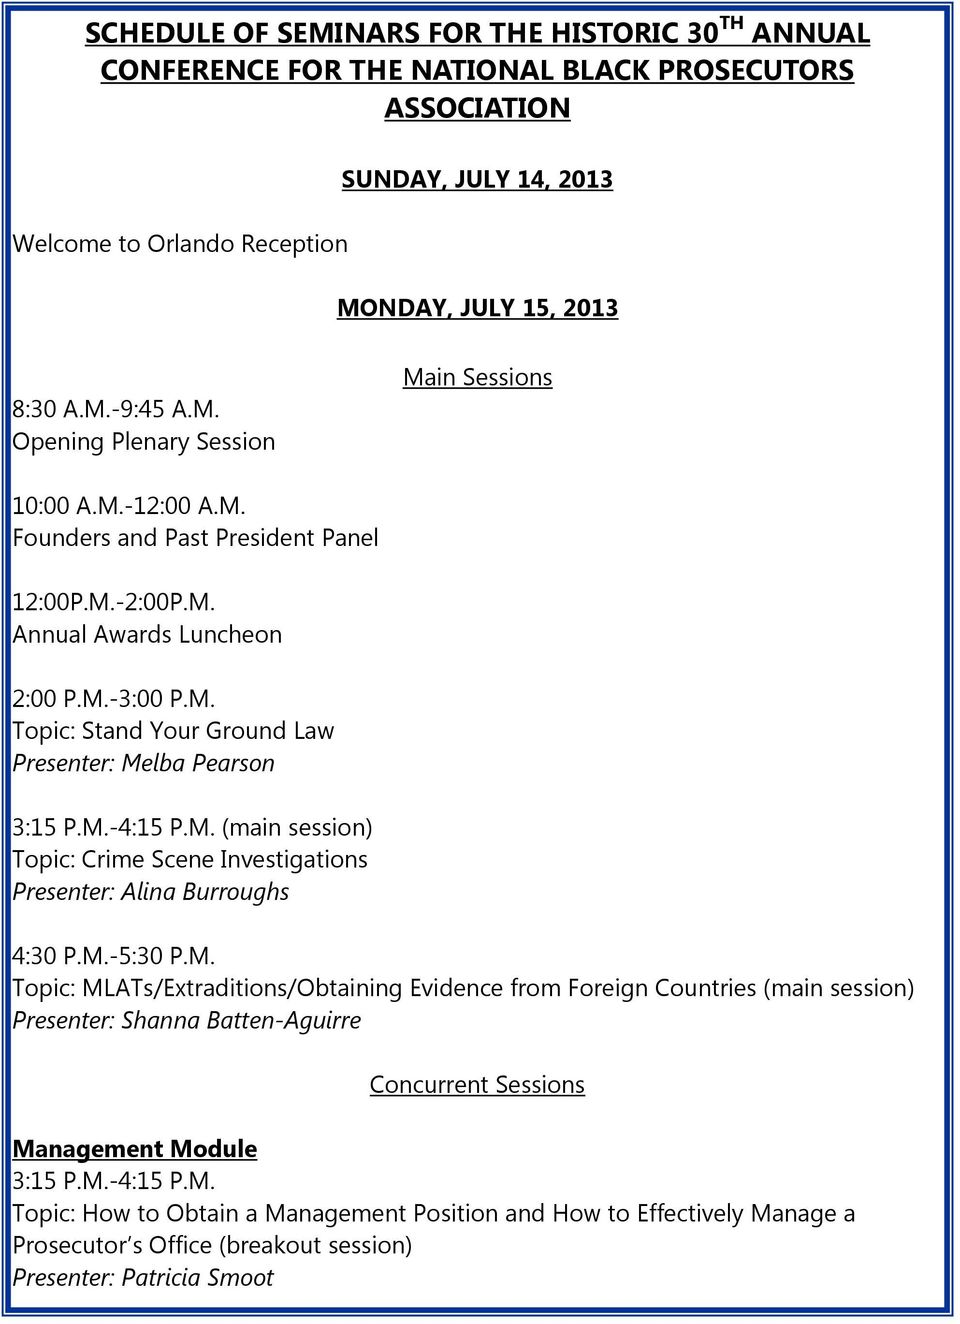 M.-4:15 P.M. (main session) Topic: Crime Scene Investigations Presenter: Alina Burroughs 4:30 P.M.-5:30 P.M. Topic: MLATs/Extraditions/Obtaining Evidence from Foreign Countries (main session) Presenter: Shanna Batten-Aguirre Concurrent Sessions Management Module 3:15 P.